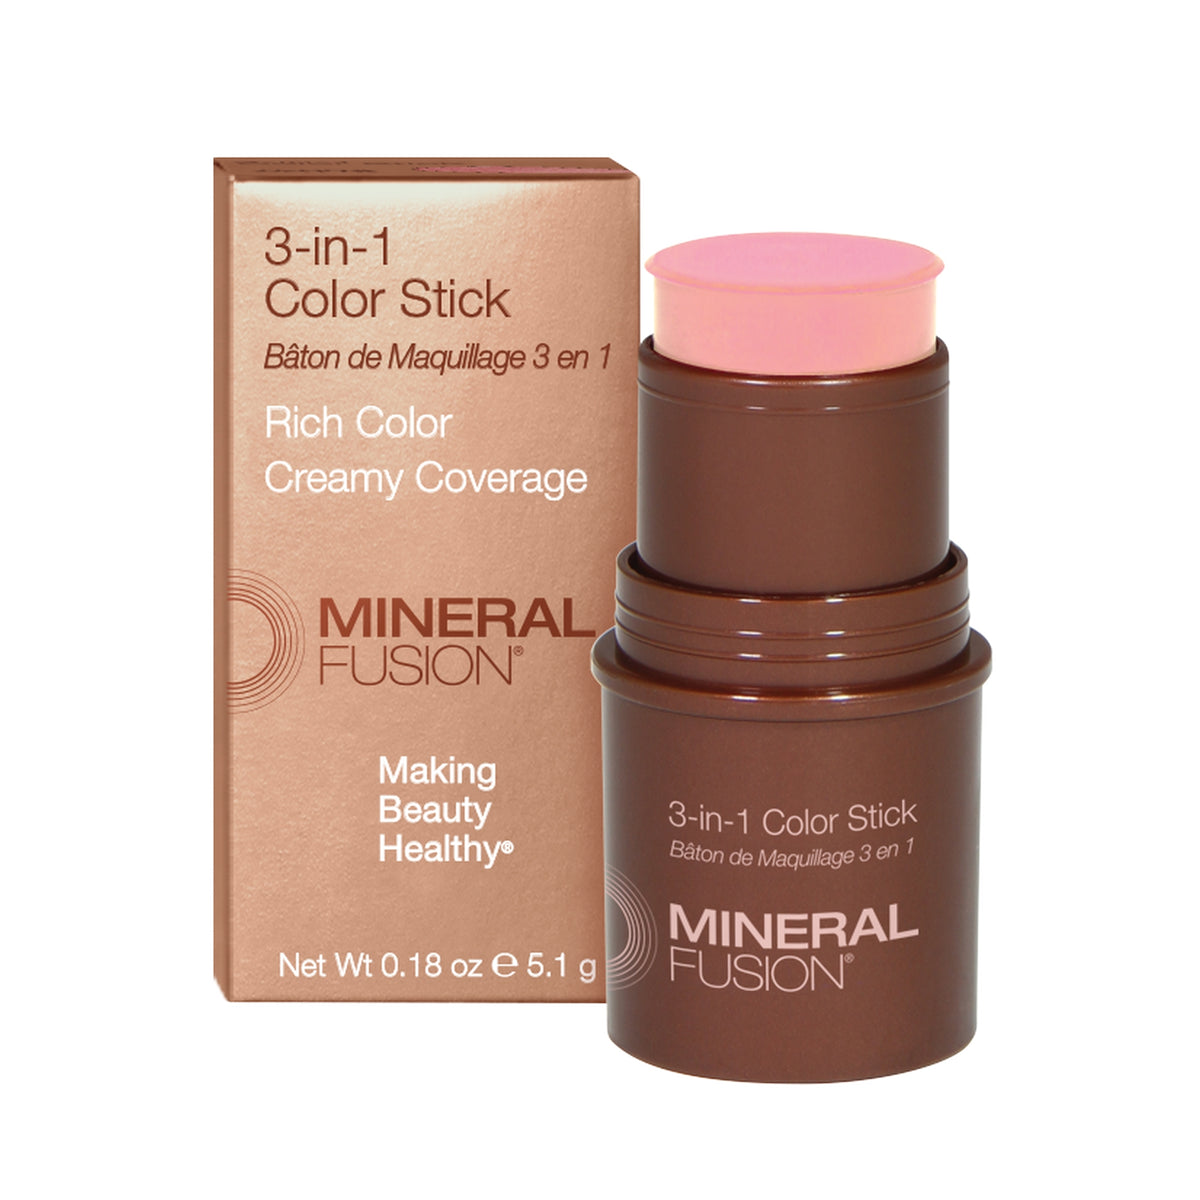 Copy of 3-in-1 Color Stick - Mineral Fusion